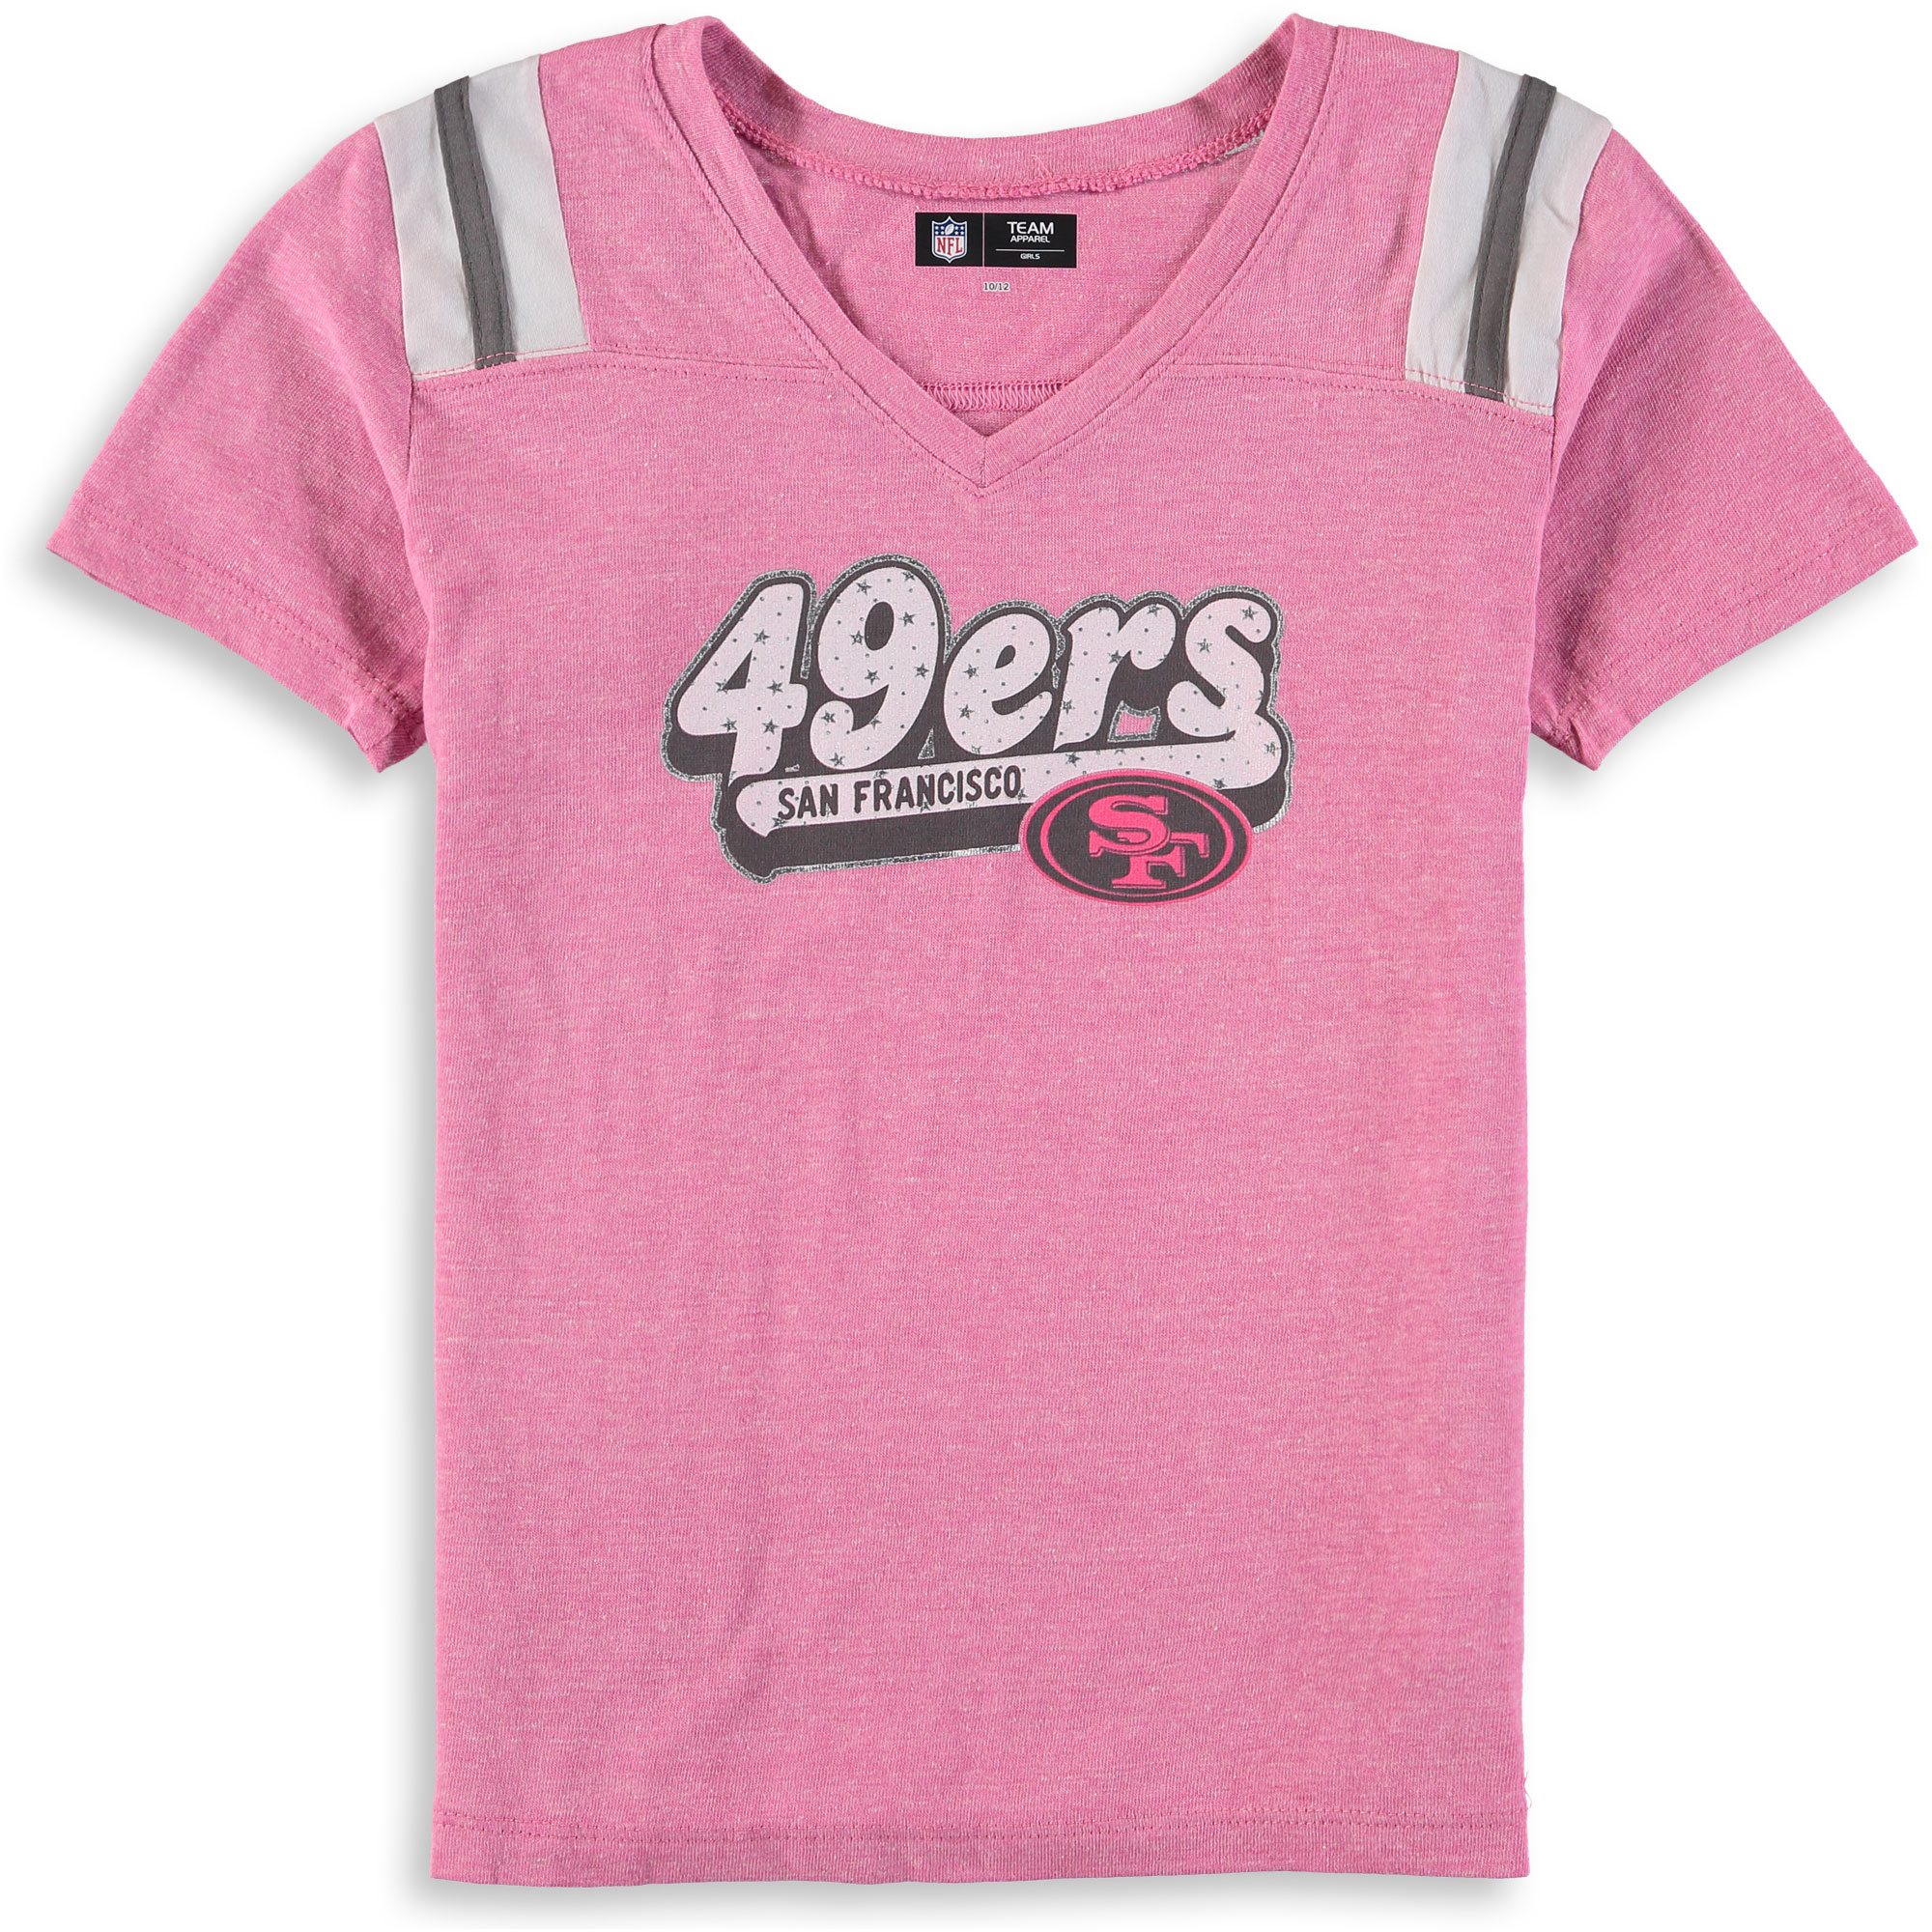 San Francisco 49ers New Era Girls Youth Star of the Game Tri-Blend T-Shirt - Pink